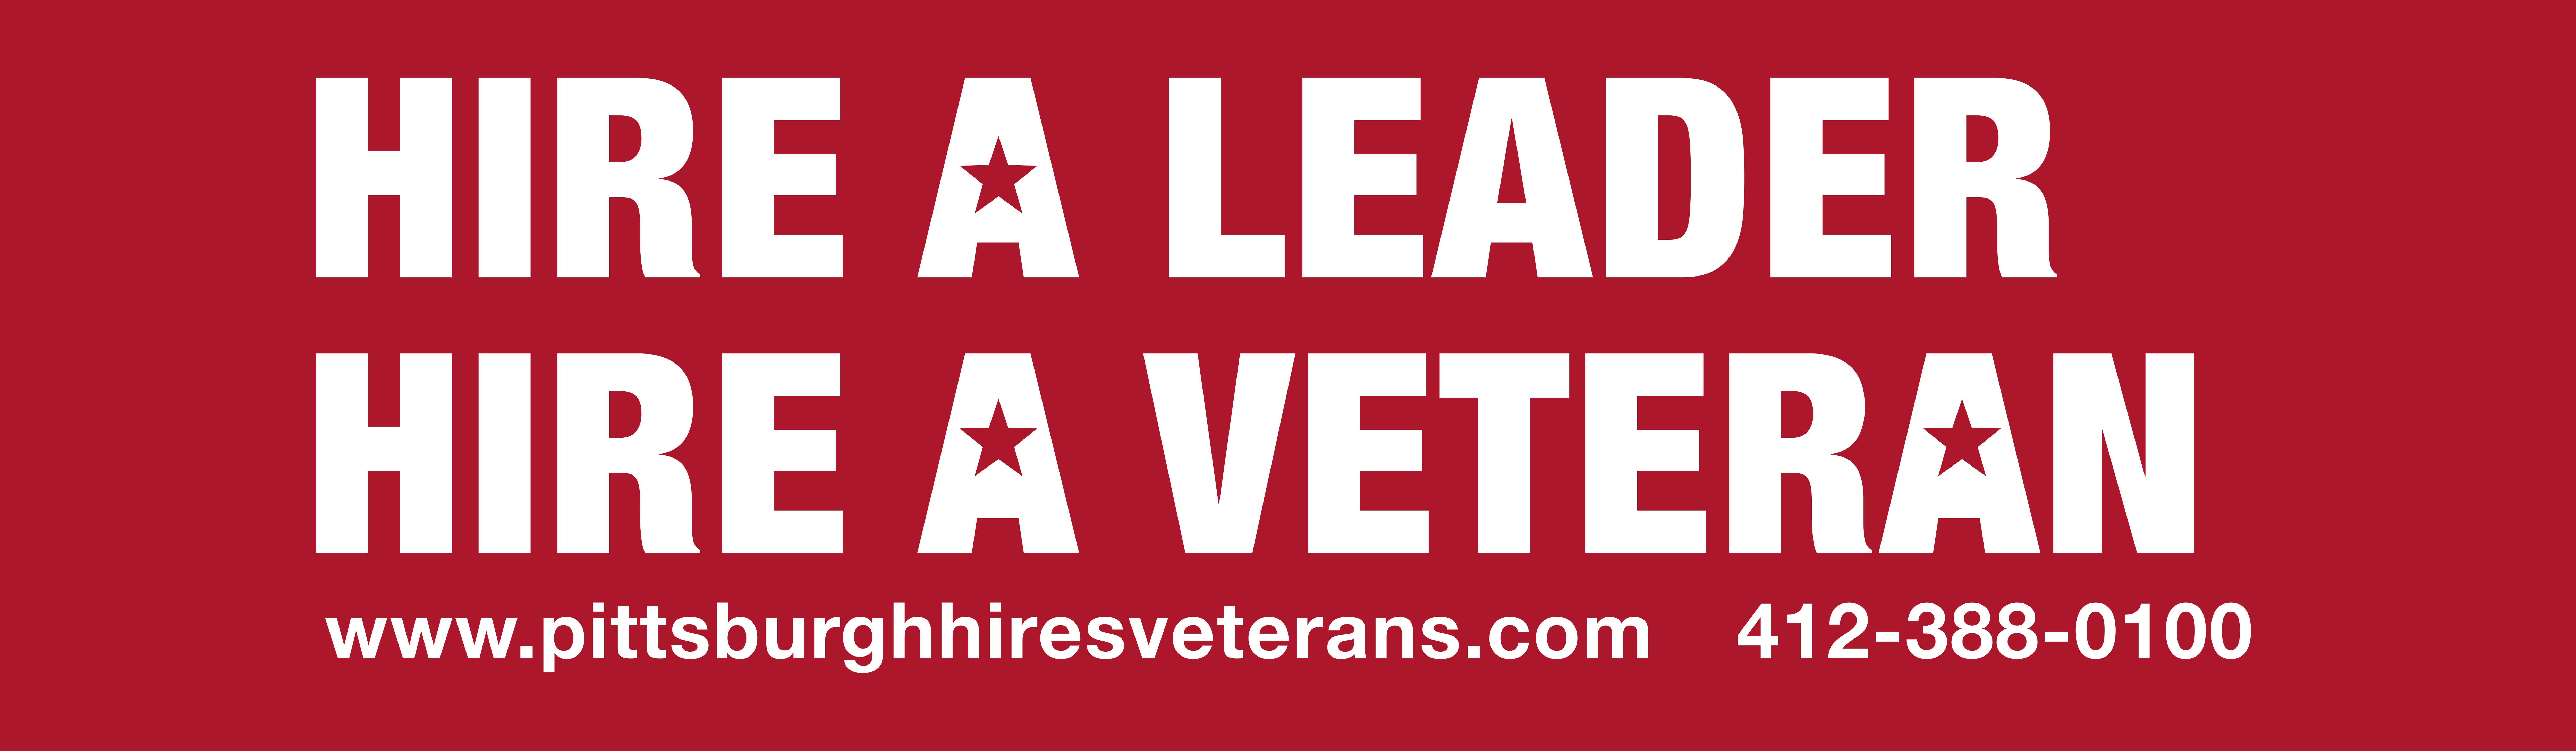 What Do Veterans Have to Offer?